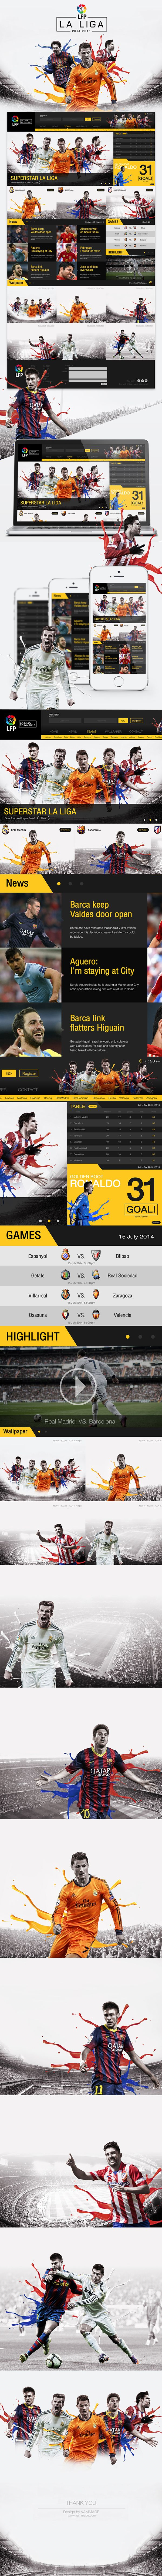 LA LIGA 2014 - 2015 Website by Chakkraphon Phonmidet